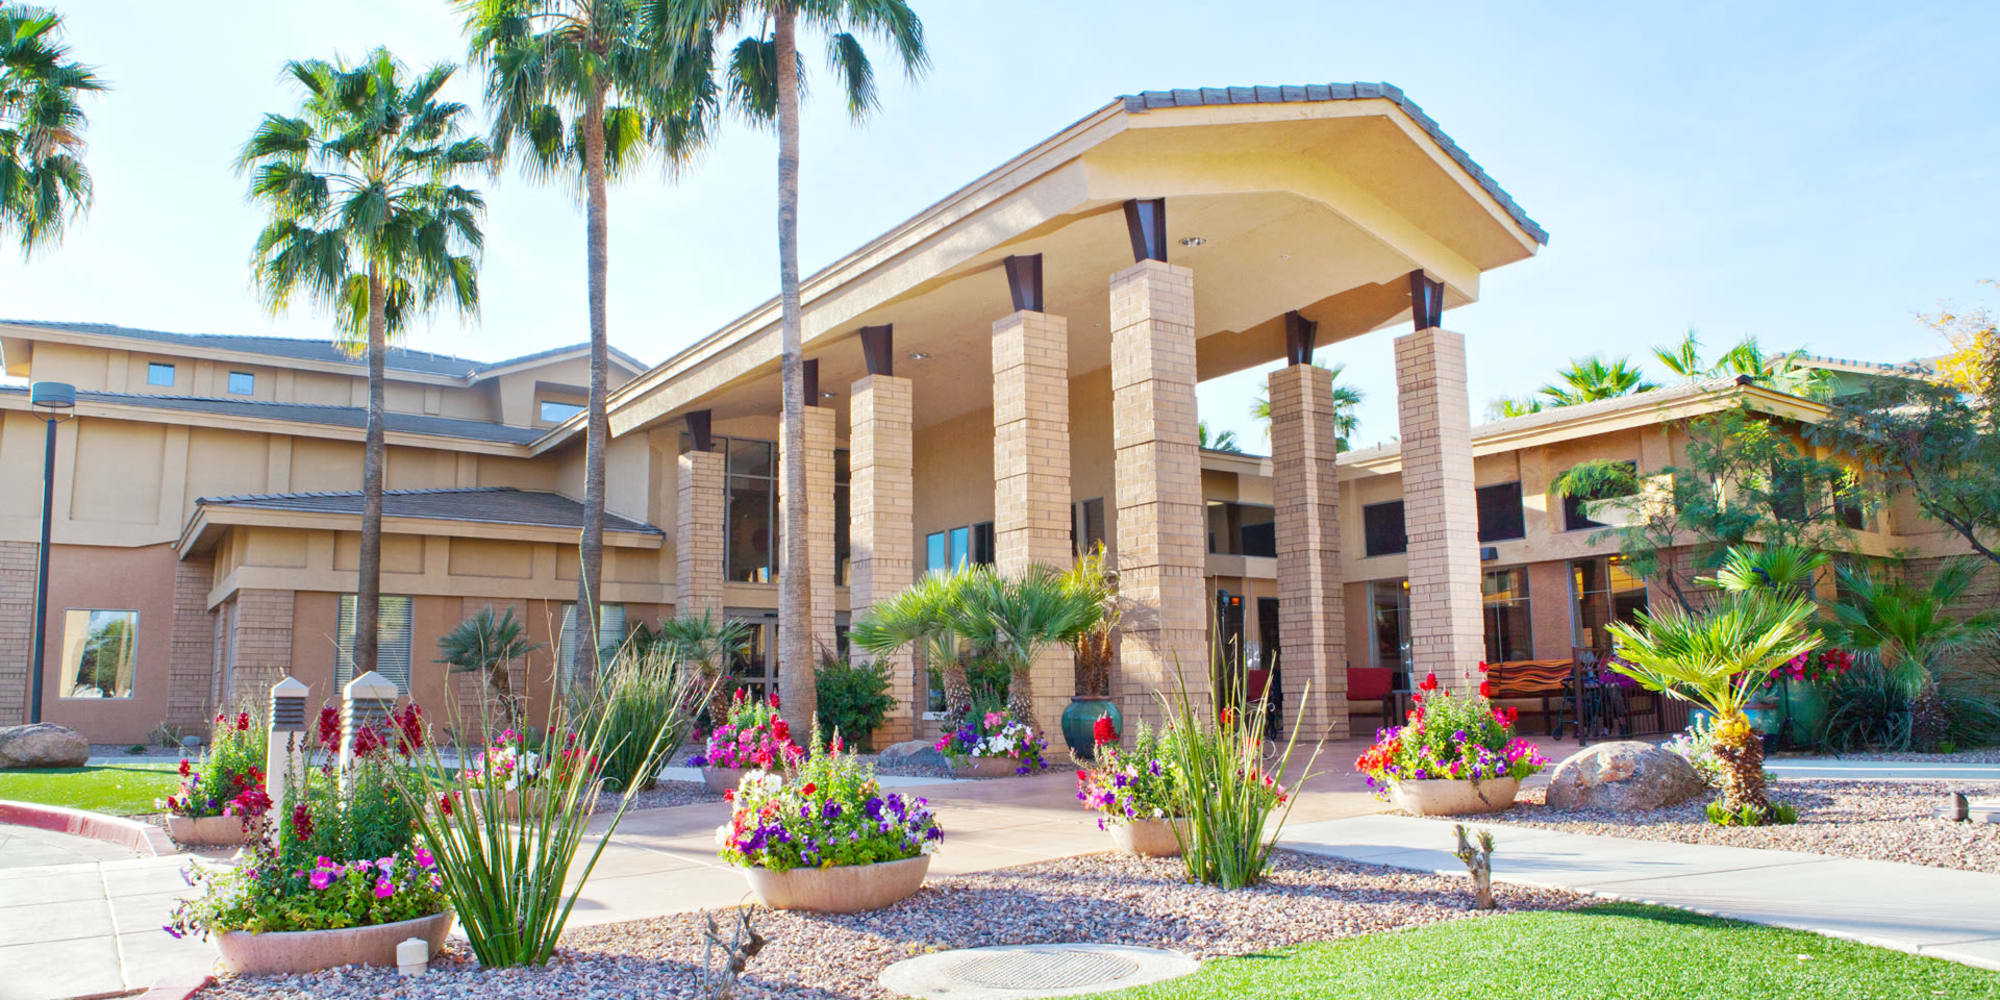 McDowell Village in Scottsdale, Arizona